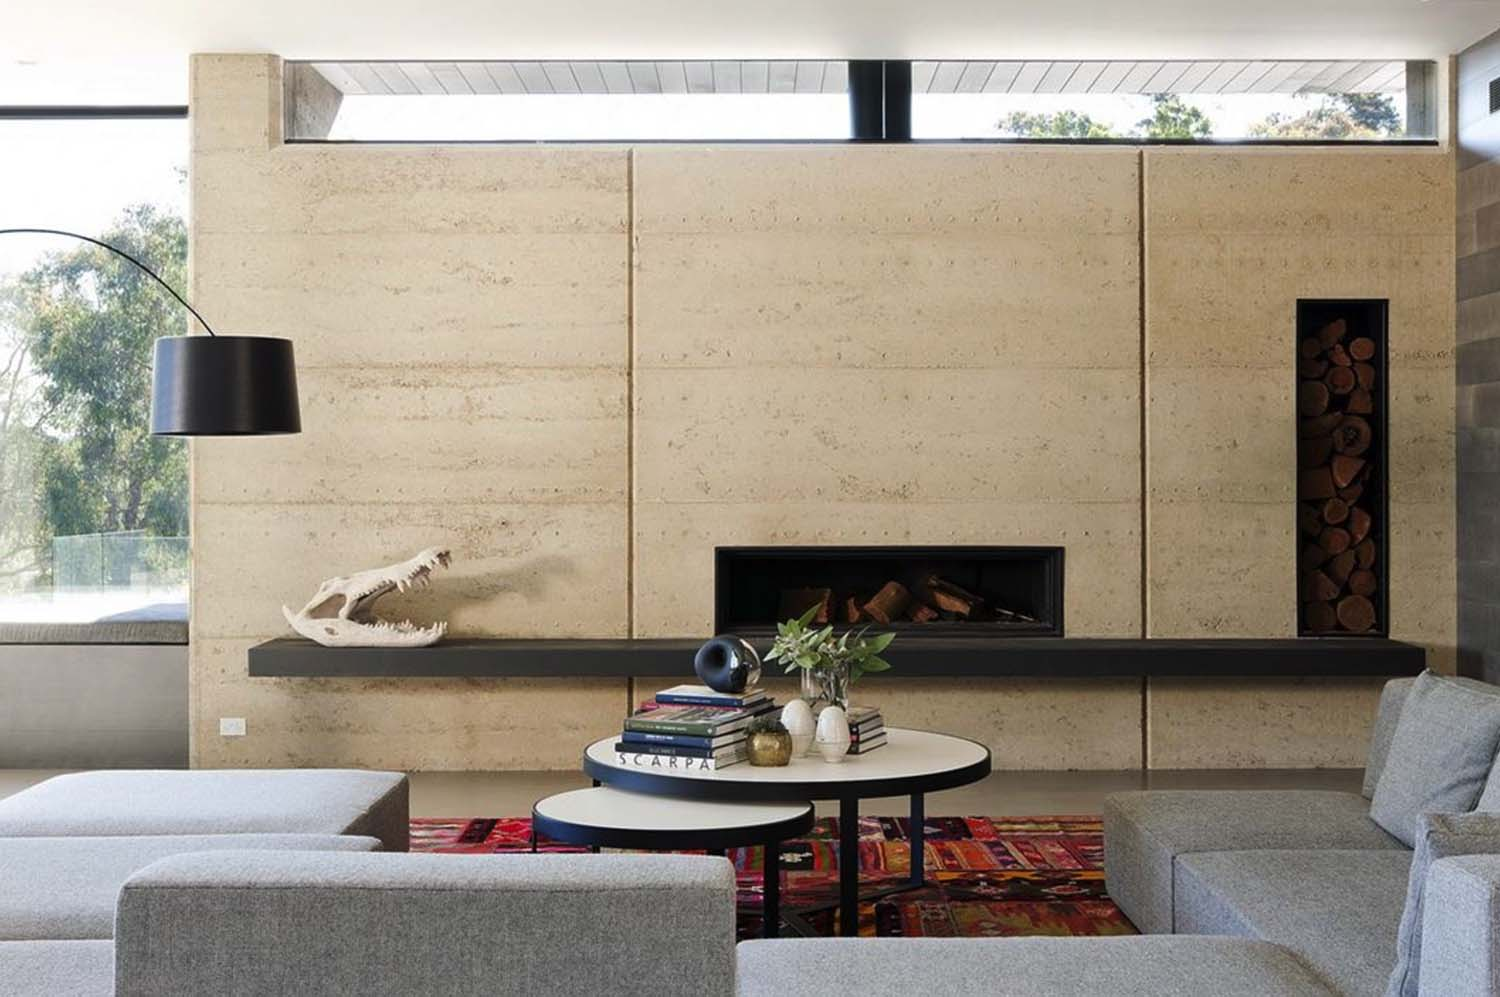 rammed earth wall example image